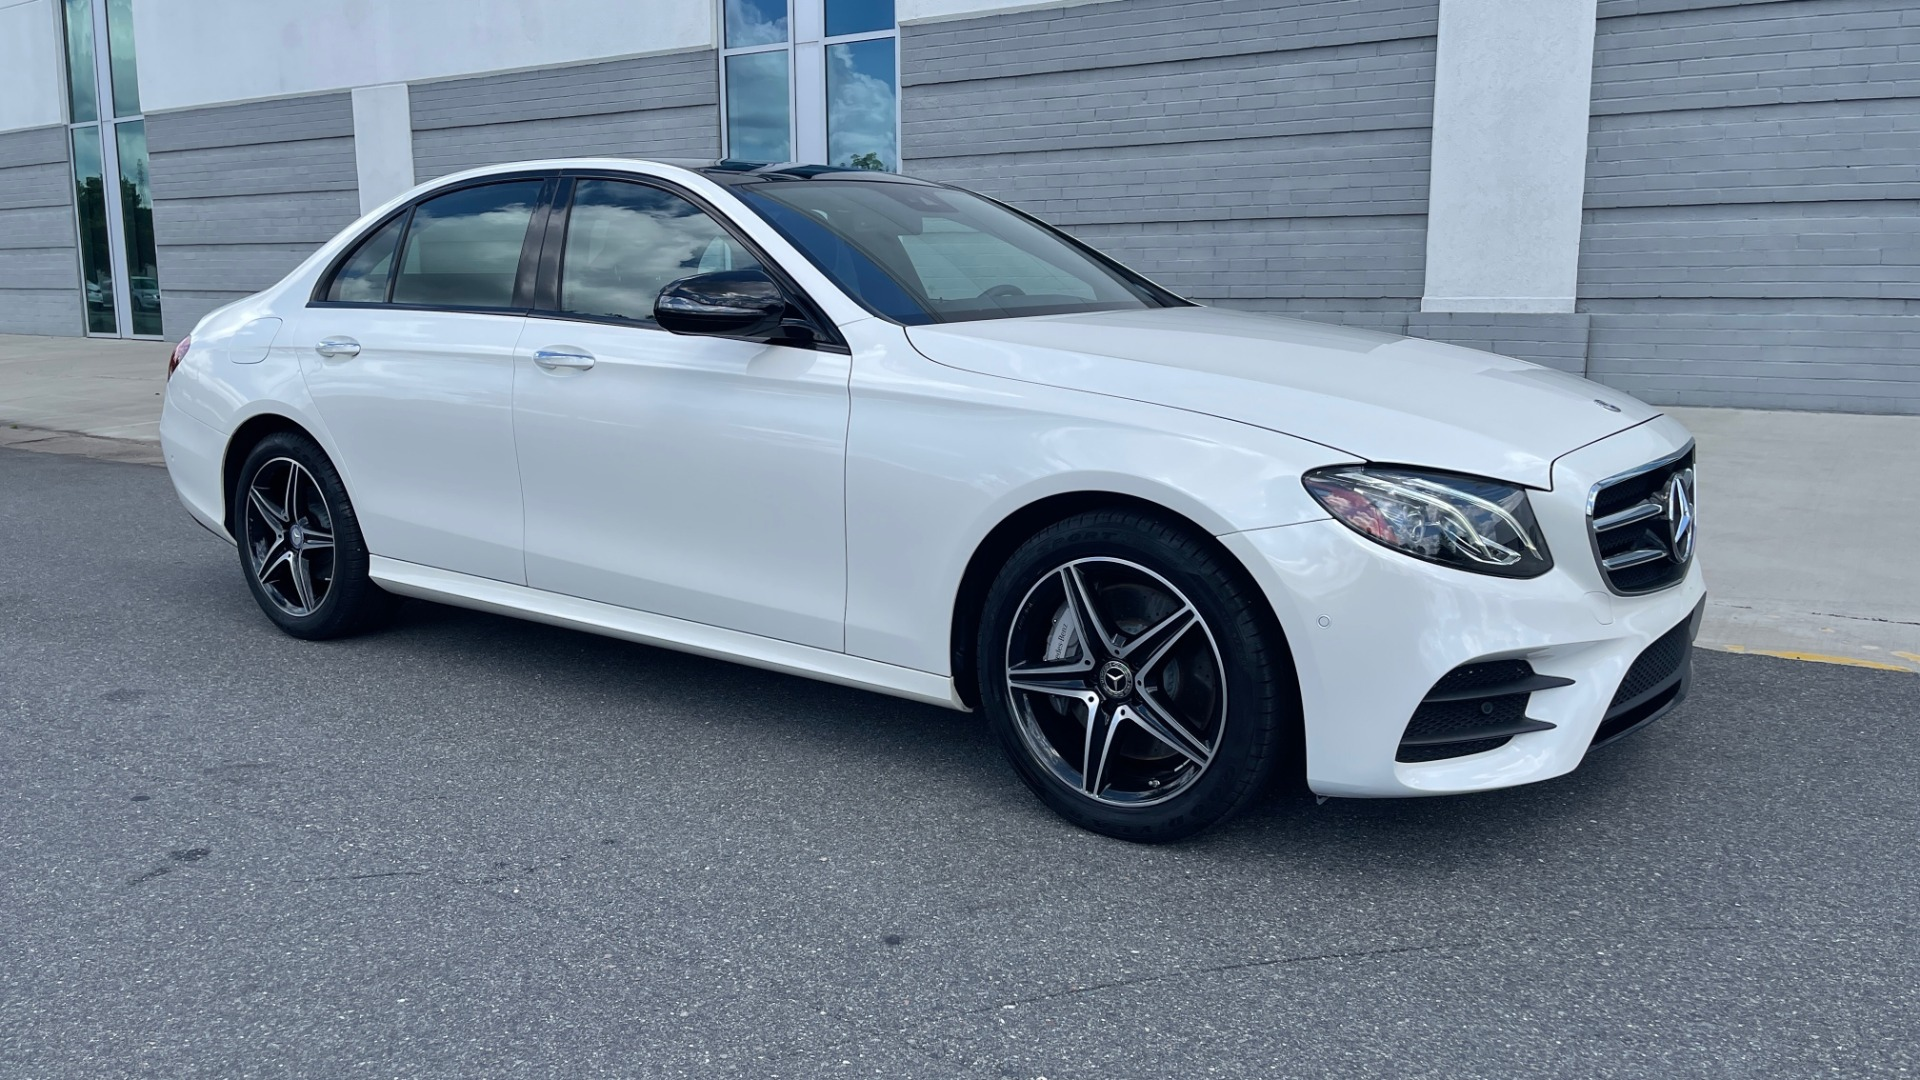 Used 2018 Mercedes-Benz E-CLASS E 300 PREMIUM / NIGHT PKG / PANO-ROOF / BURMESTER / REARVIEW for sale $42,399 at Formula Imports in Charlotte NC 28227 6